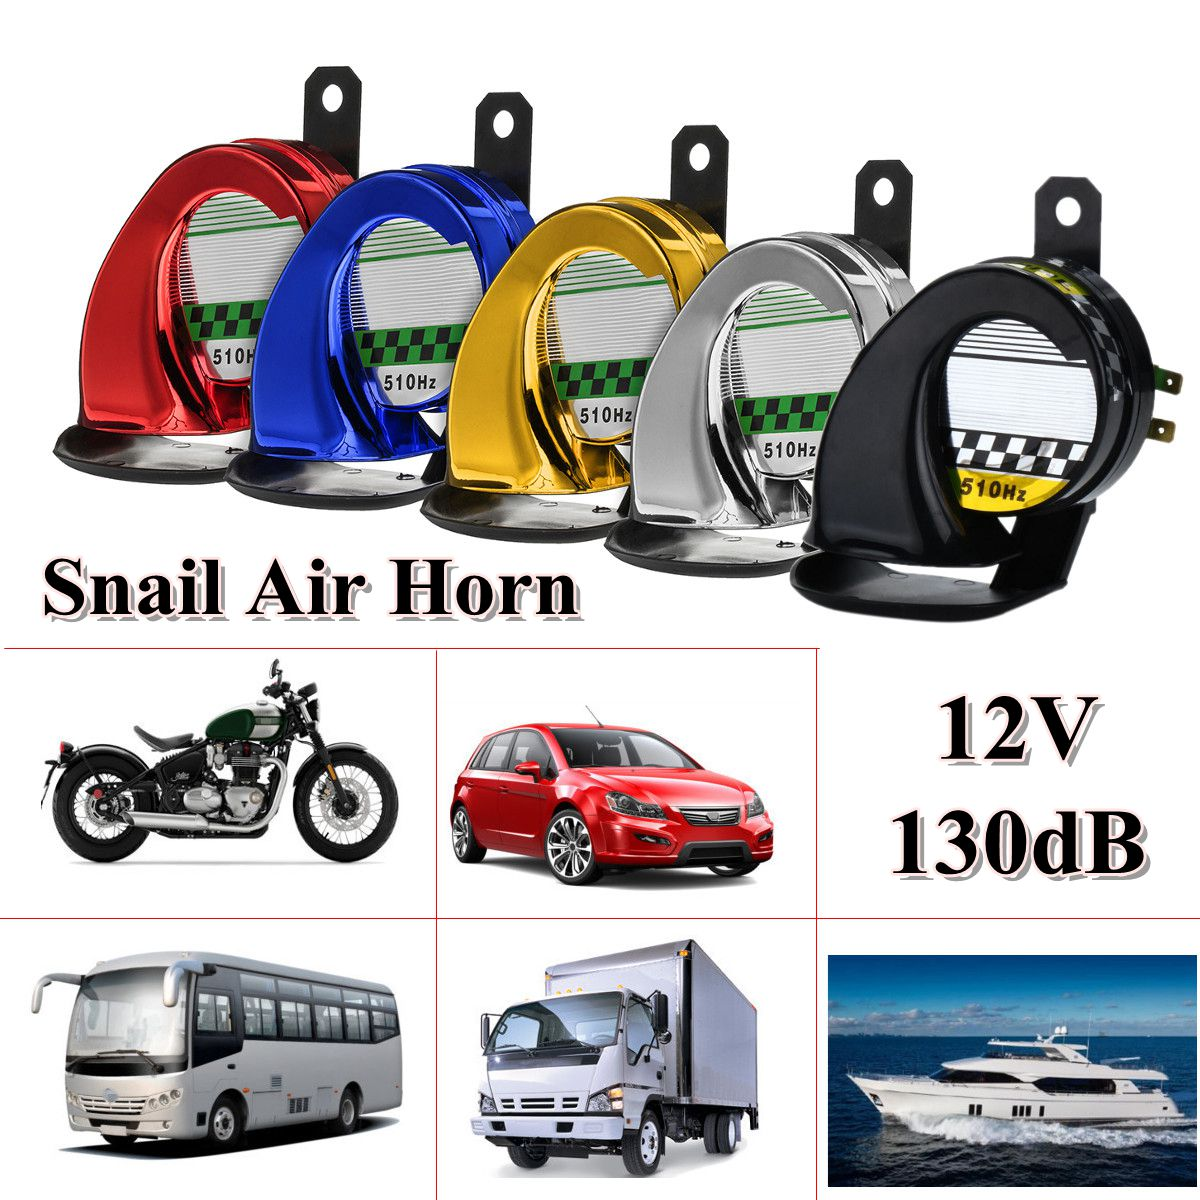 12V 130dB Universal Waterproof Loud Snail Air Horn Siren For Truck Motorcycle Car